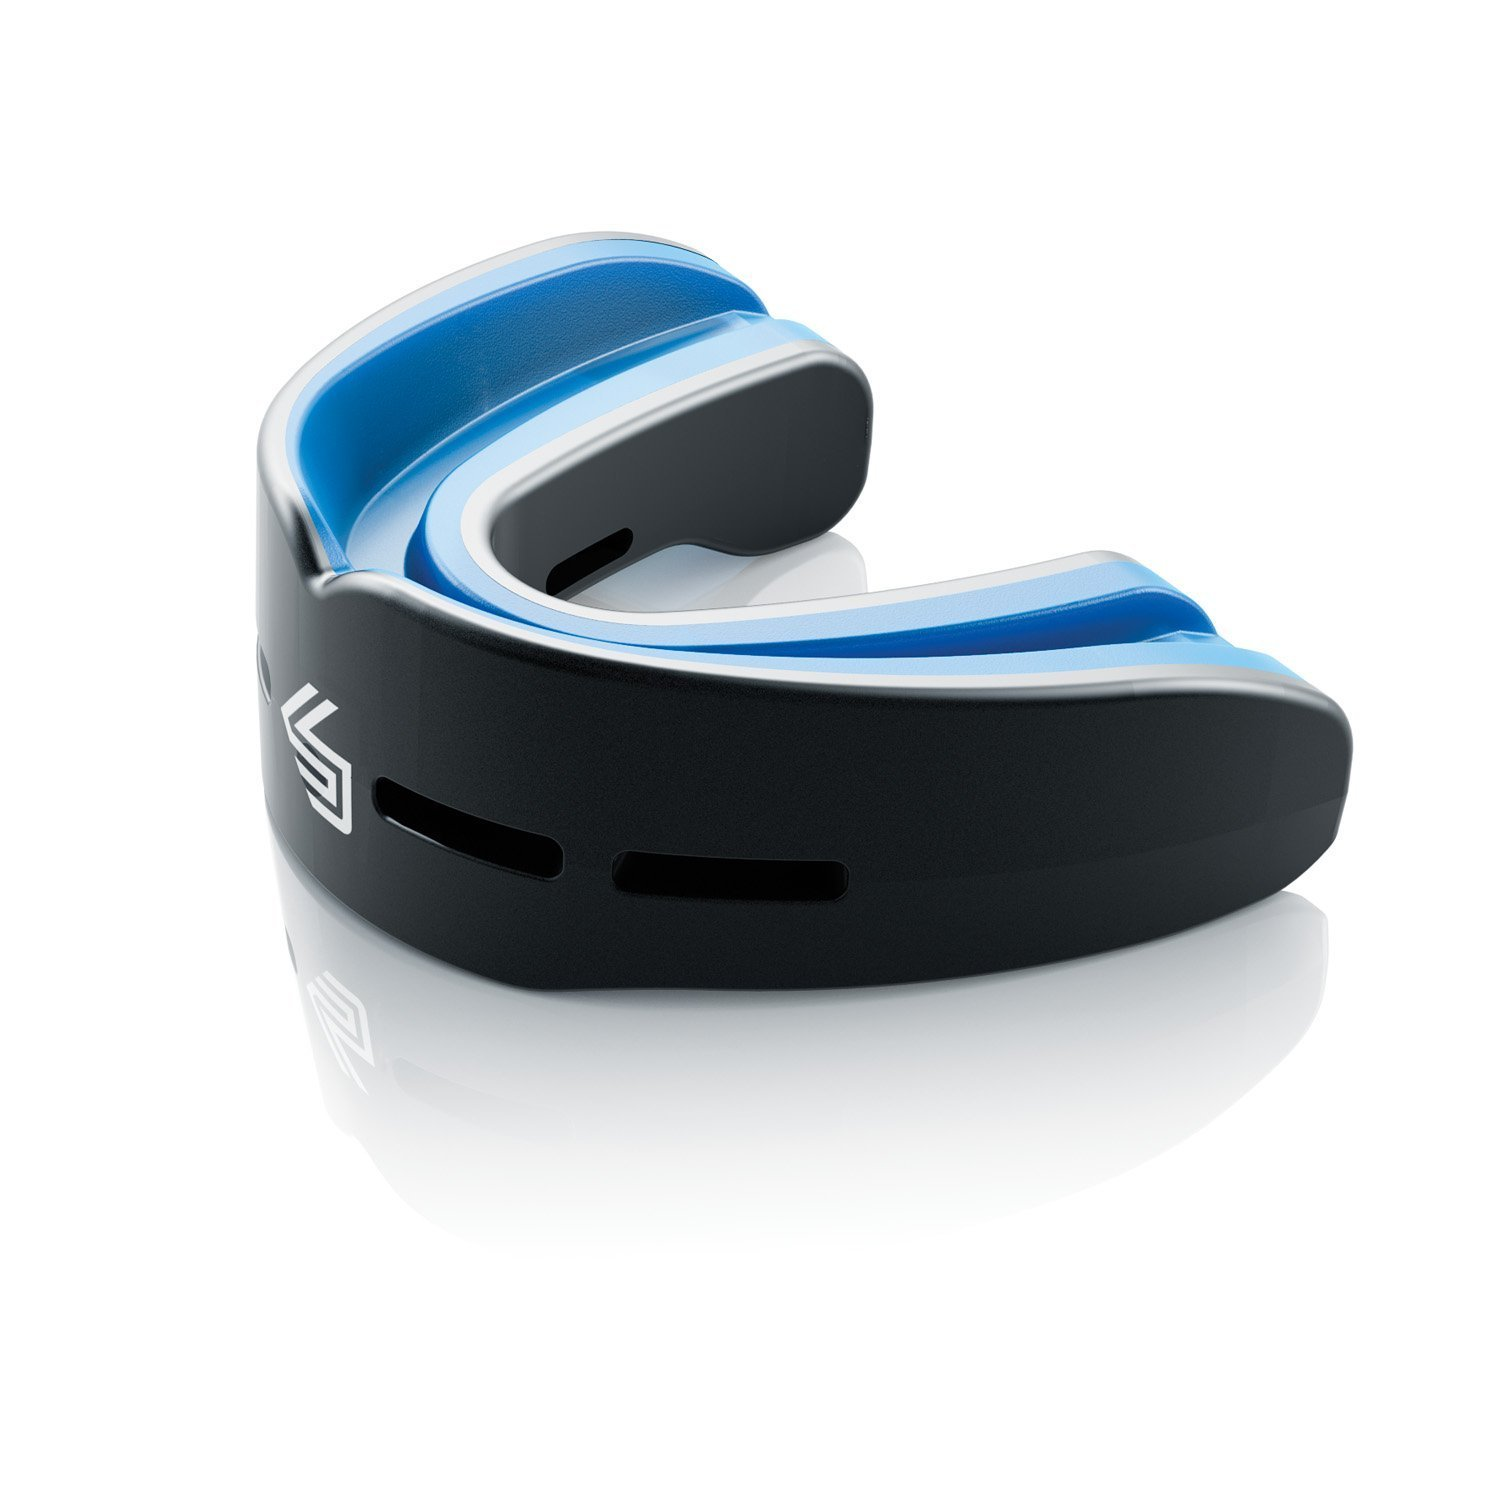 Shock Doctor Mouthguard Double Nano Doctor B00PA9HV9Y Fight Mouthguard (Black, Youth) by Shock Doctor B00PA9HV9Y, ハスヌマムラ:0e2359d3 --- capela.dominiotemporario.com